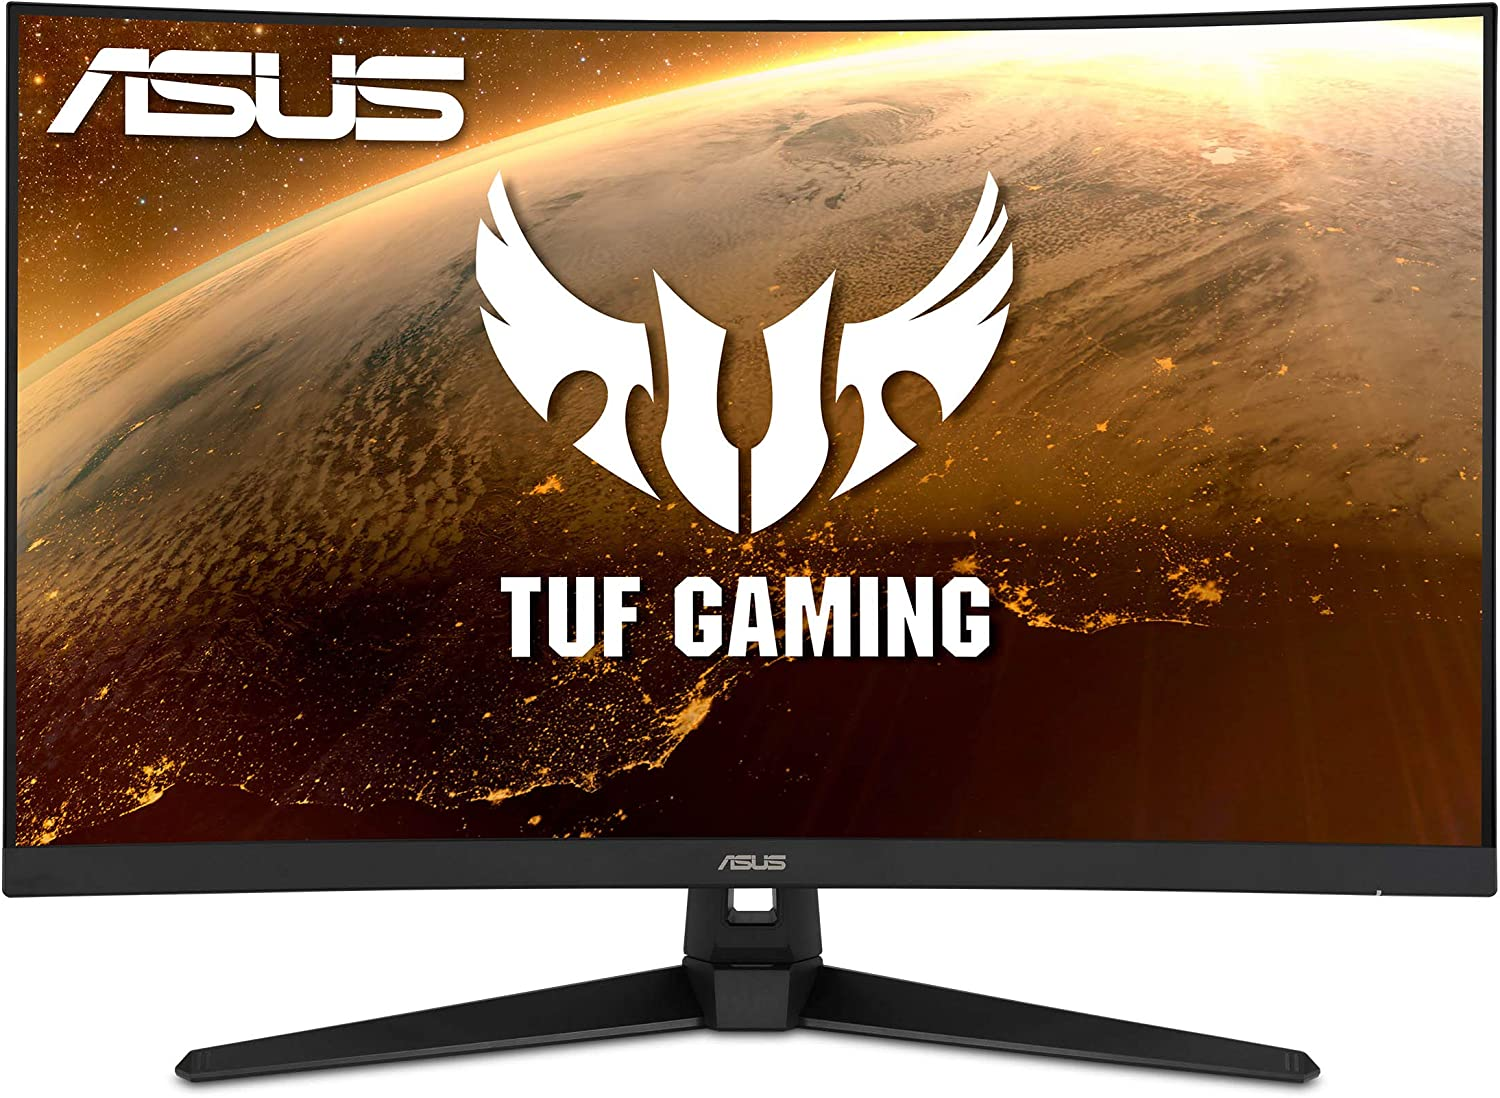 "ASUS TUF Gaming VG328H1B 32"" Curved Monitor"